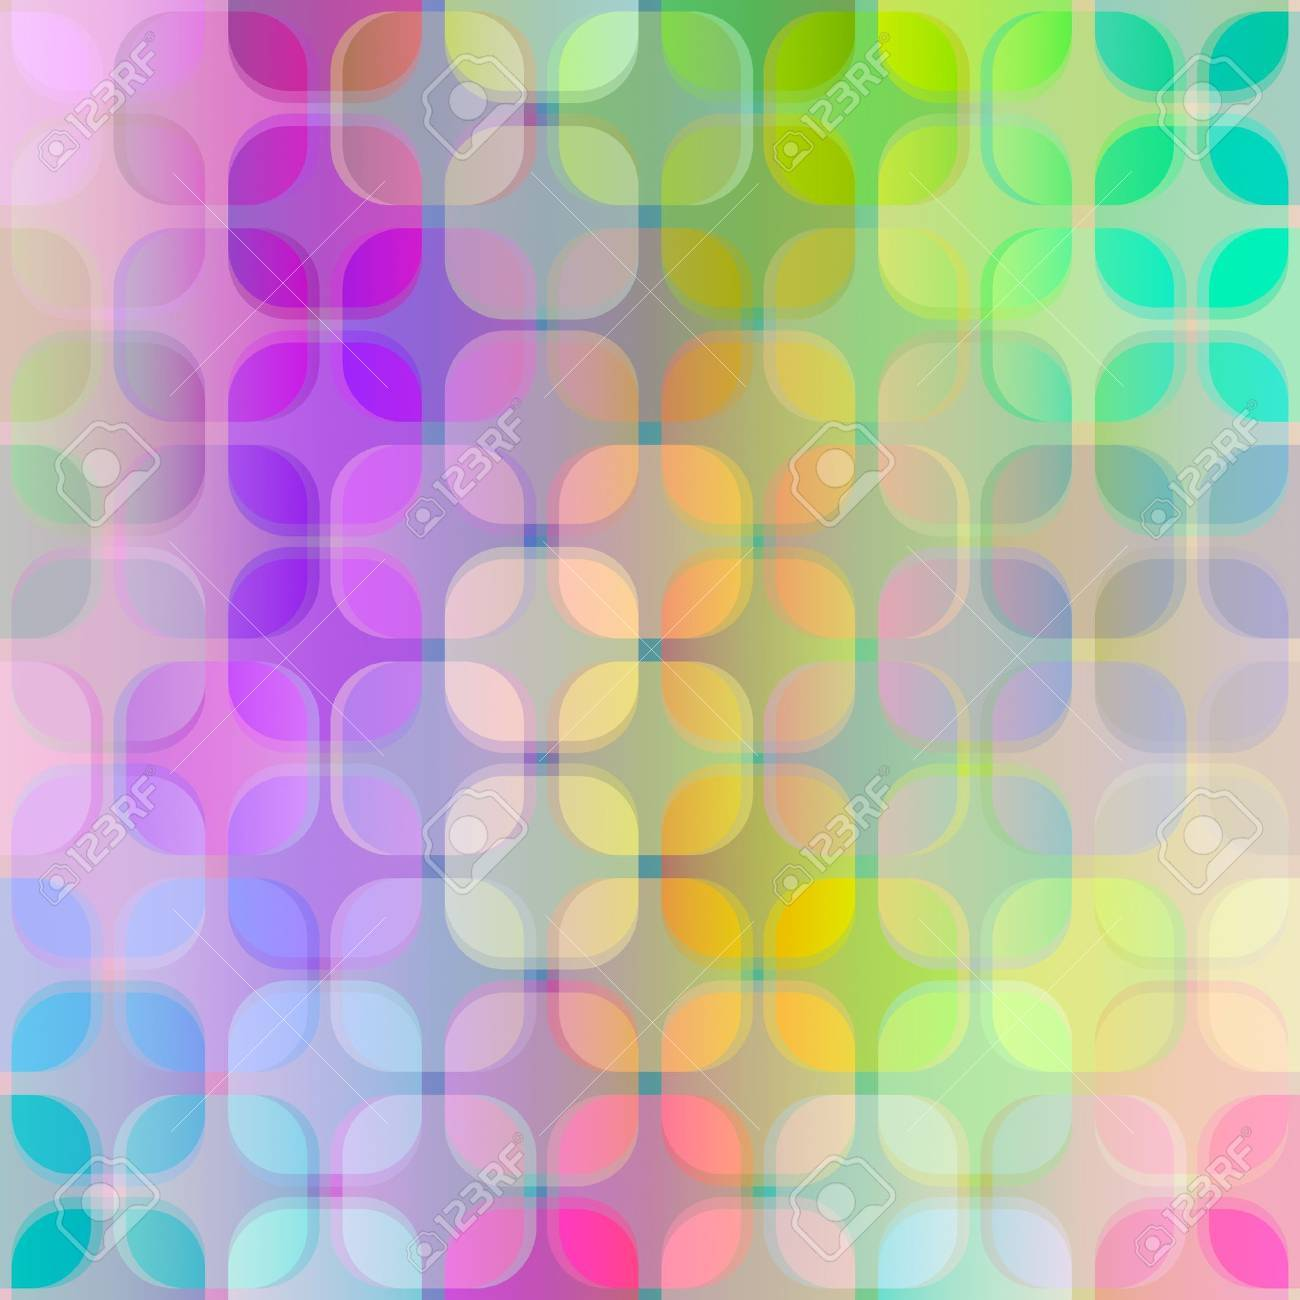 seamless texture of transparent grunge vibrant cube shapes Stock Photo - 4749872